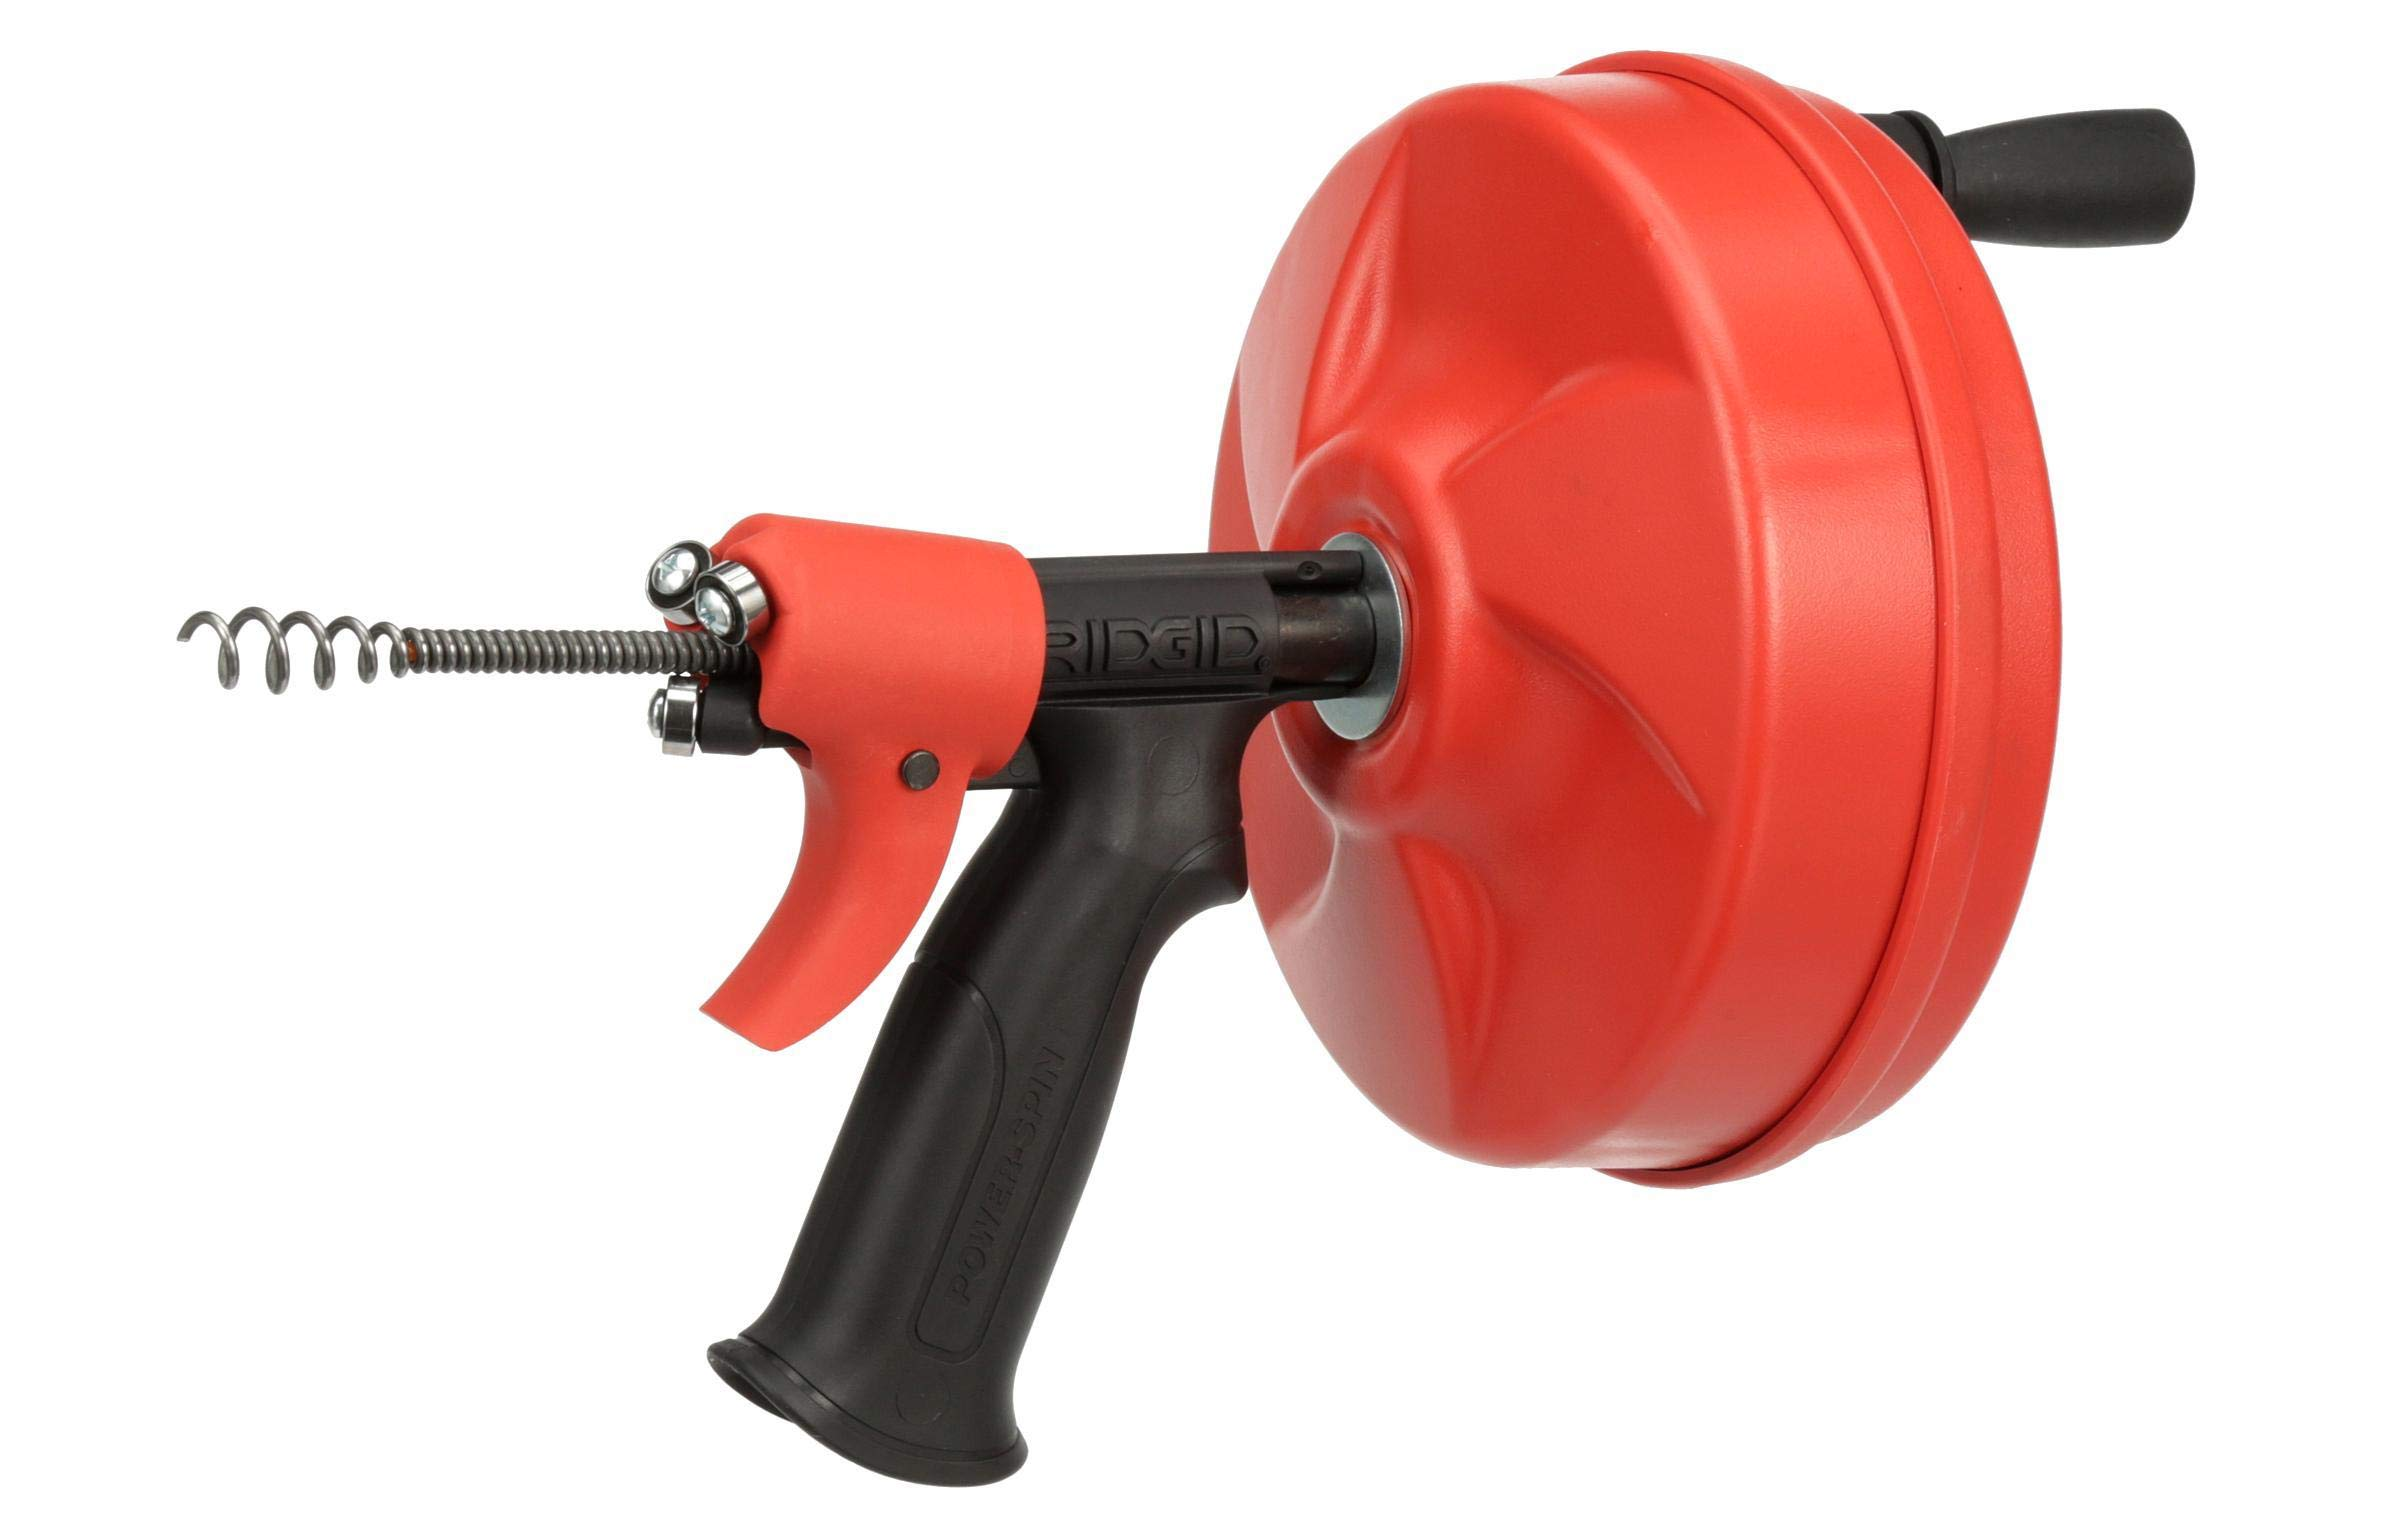 Ridgid GIDDS-813340 41408 Power Spin with AUTOFEED, Maxcore Drain Cleaner Cable, and Bulb Drain Auger to Remove Drain Clogs by Ridgid